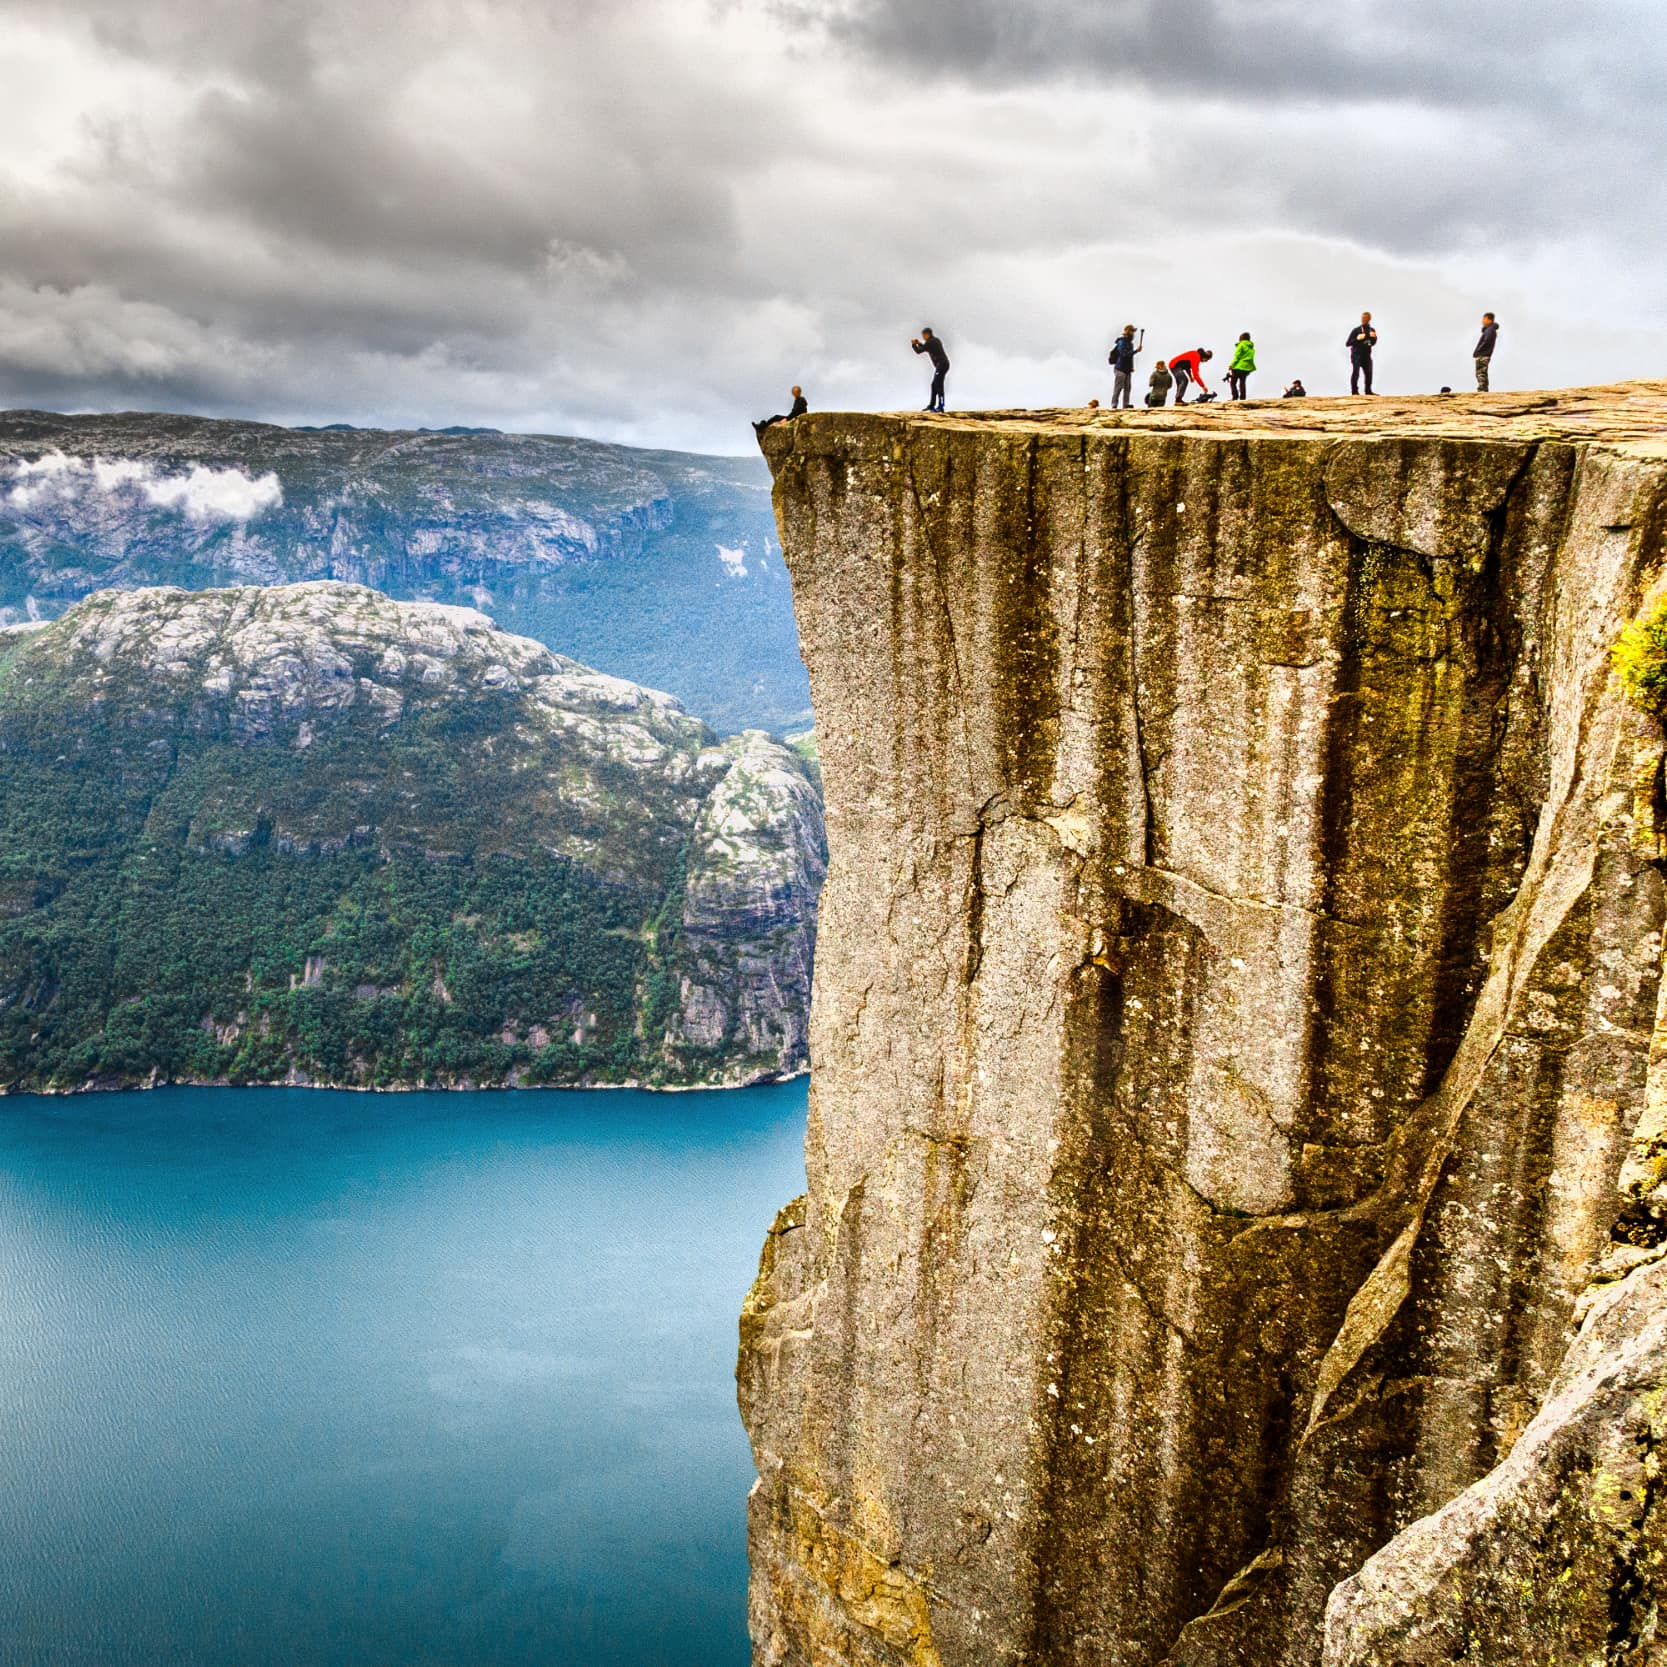 People walking upon Preikestolen, famous nature landmark in Norwey. Lysefjorden and mountains in background.